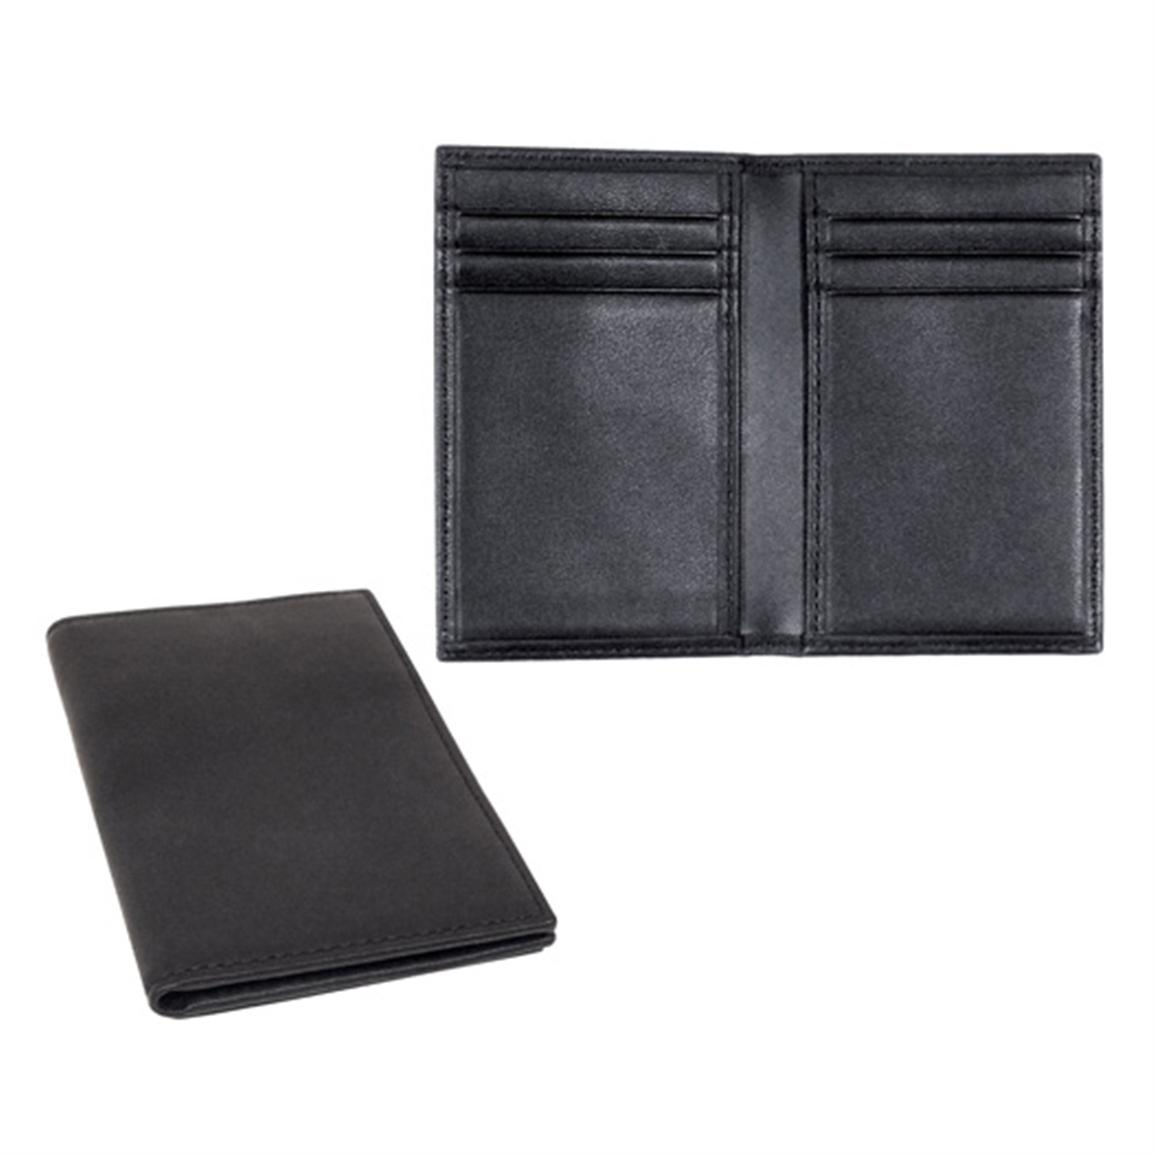 Royce Leather® Hanover RFID Blocking Card Case, Black